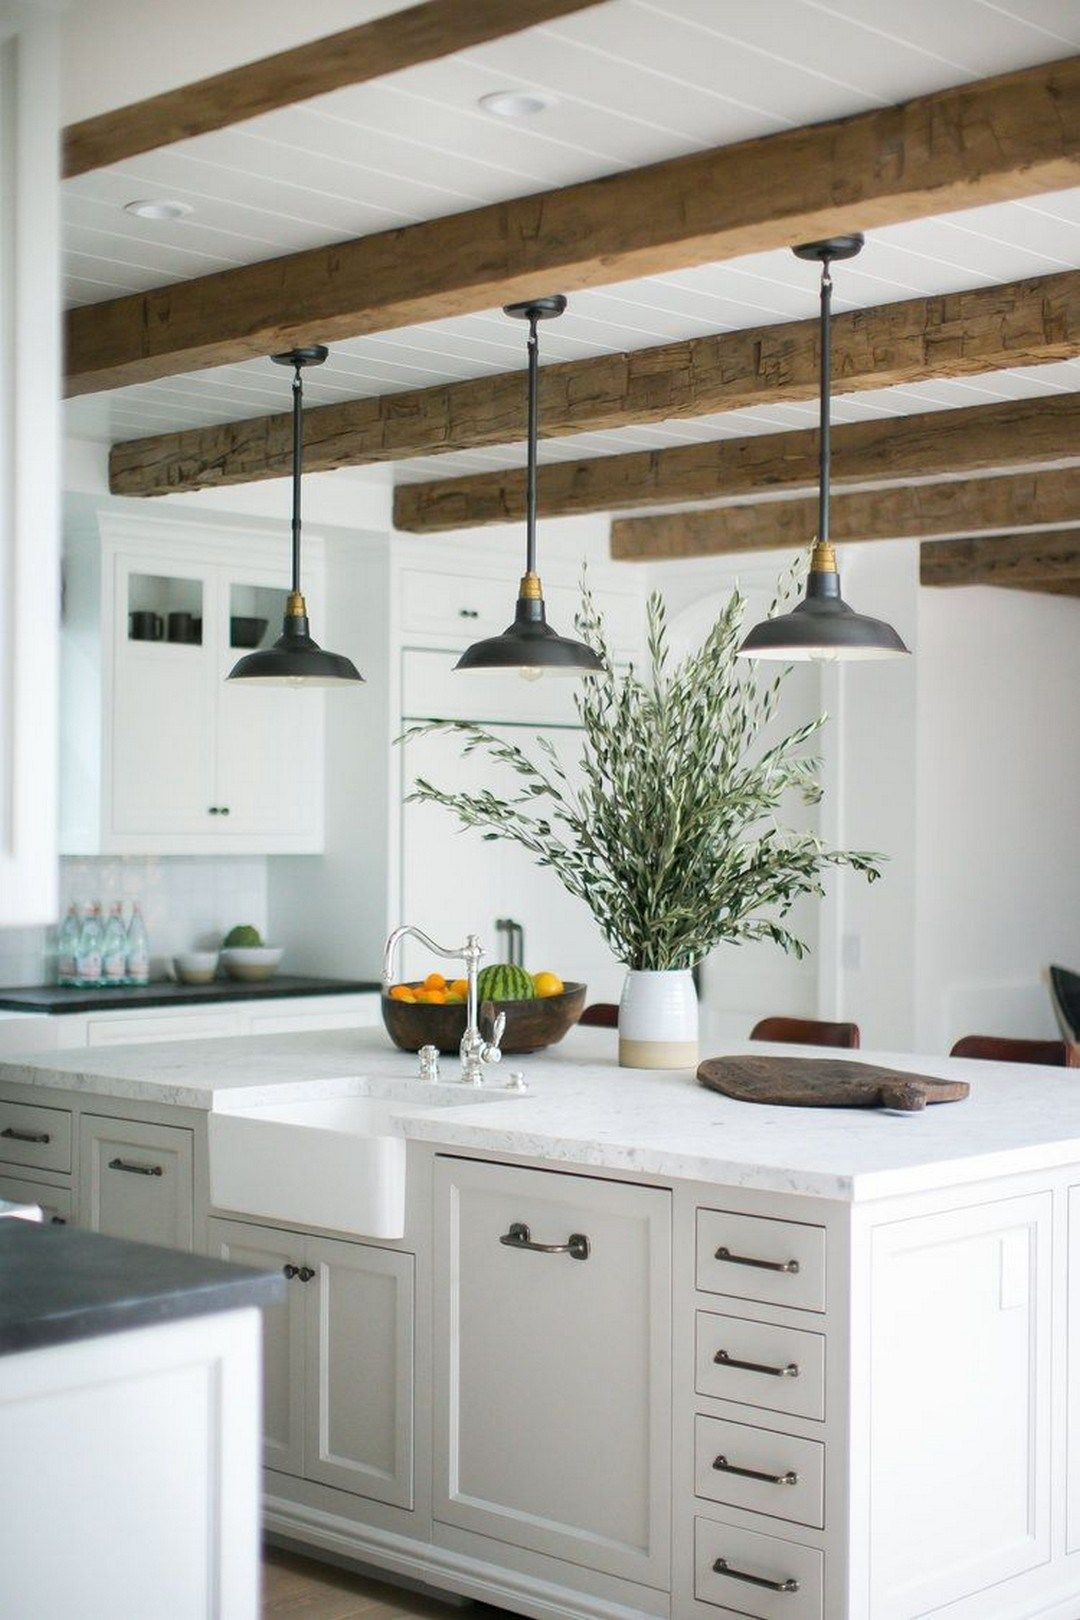 25 Kitchen Lighting Ideas Best Of All Time Kitchen Designs You Should Know The Basics In Advan In 2020 Interior Design Kitchen Kitchen Island Decor Kitchen Design